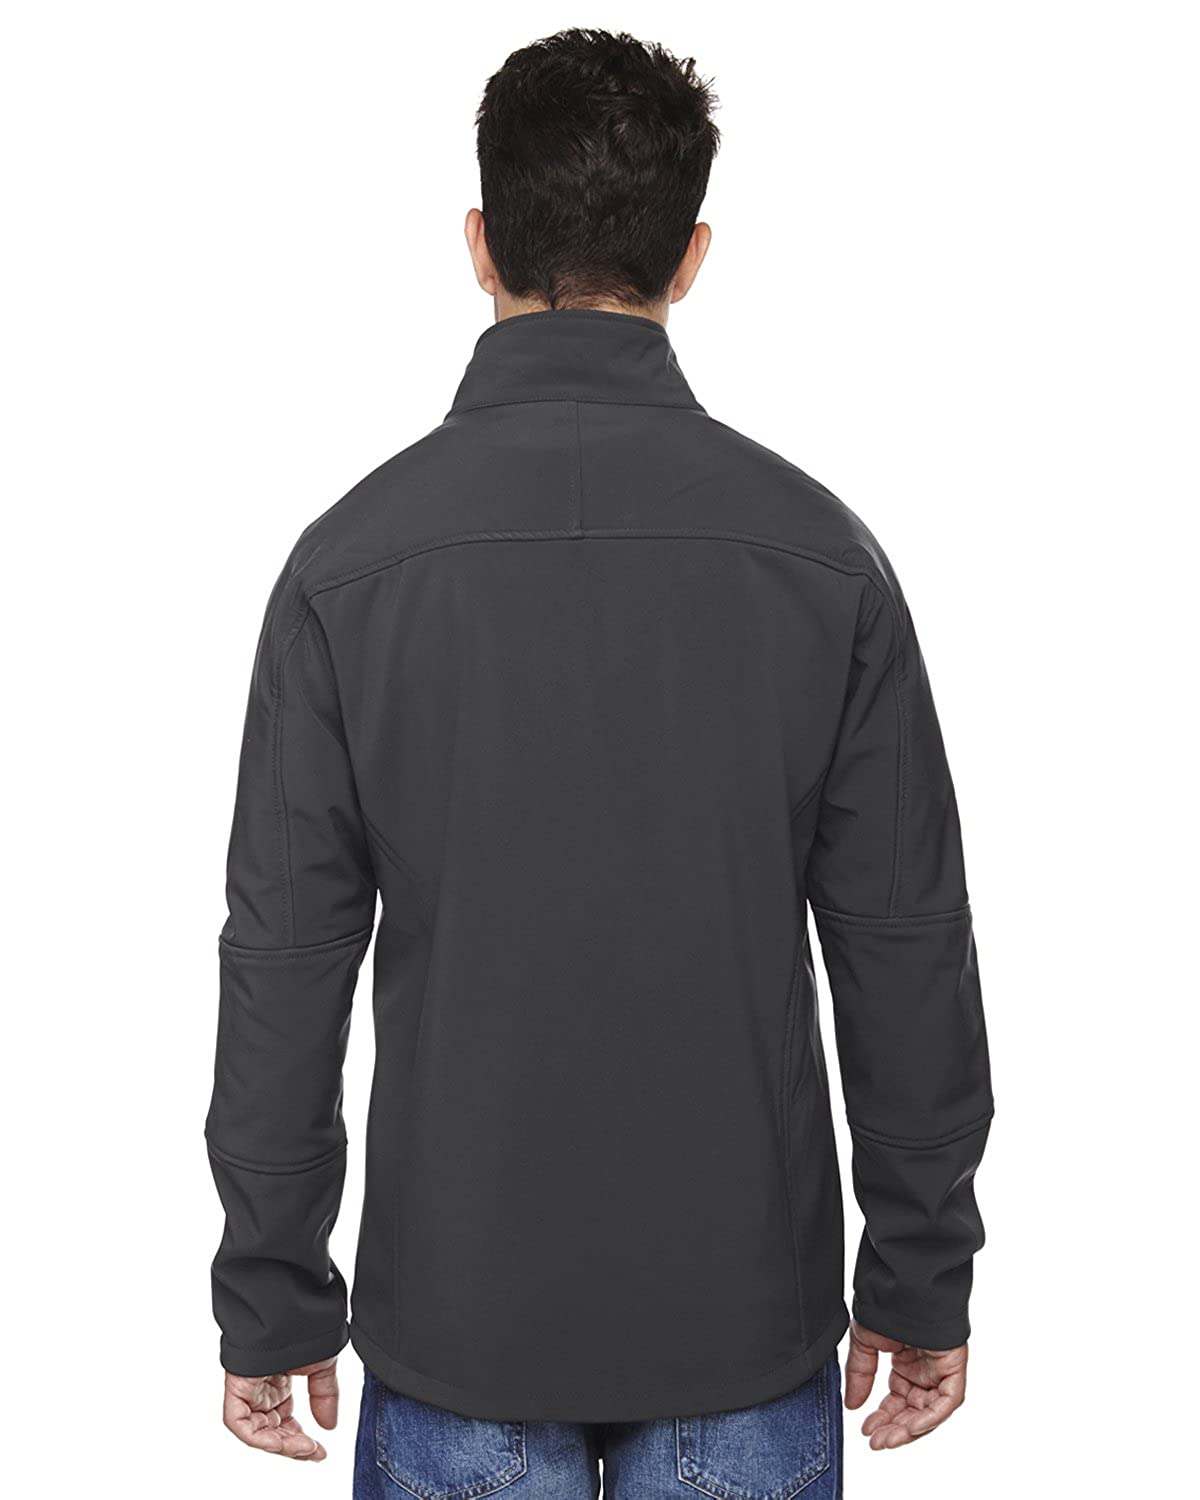 Graphite 156 3XL North End Men's Soft Shell Technical Jacket